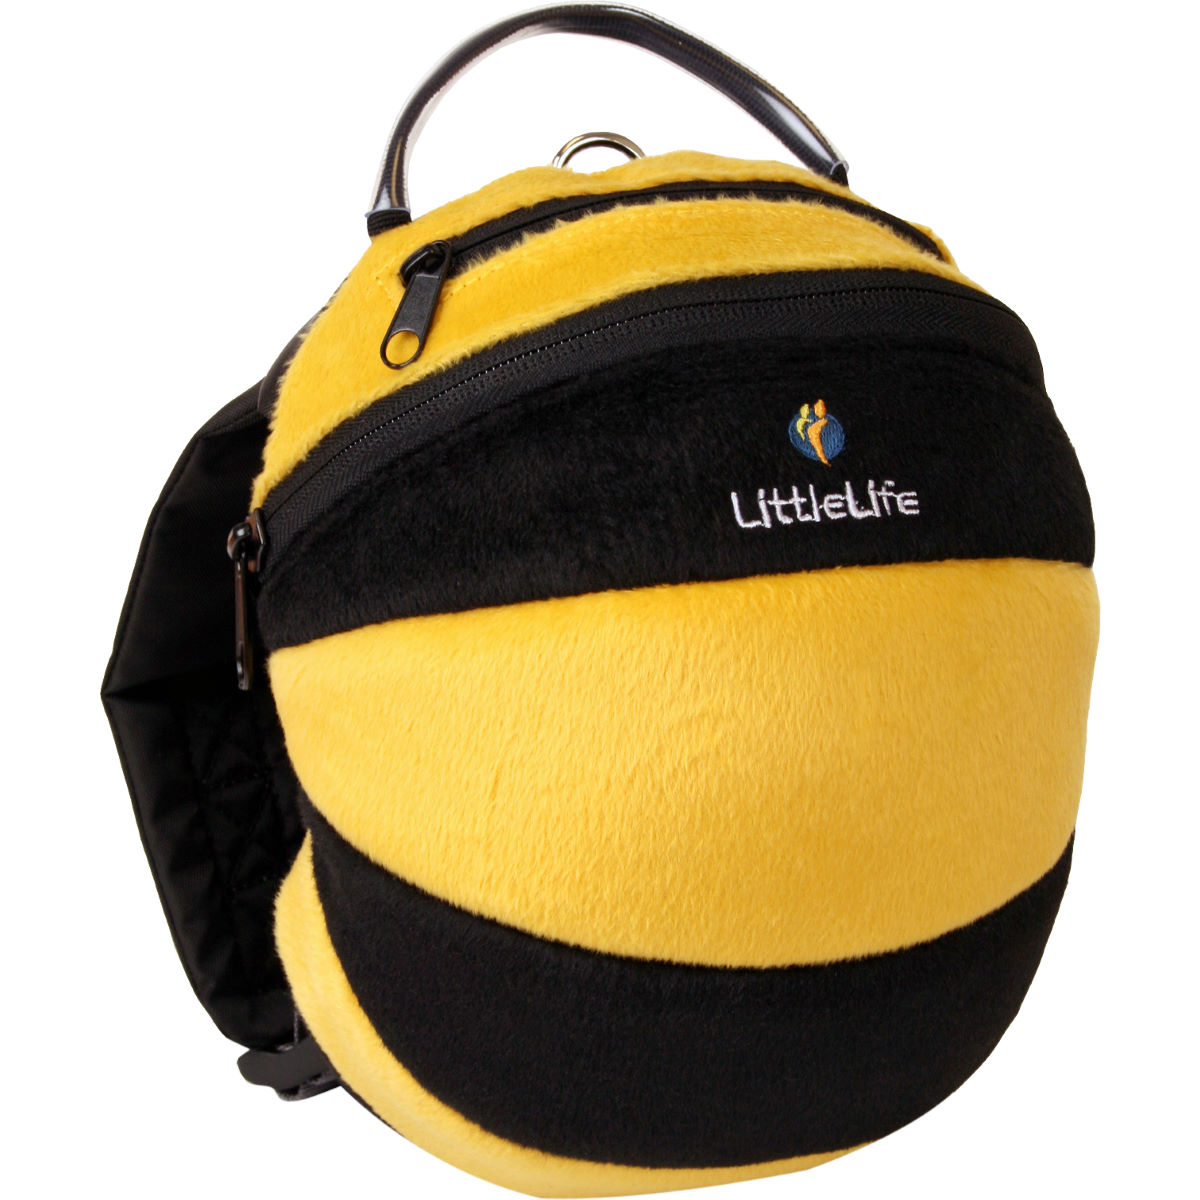 Mochila infantil LittleLife - Toddler Furry Animal - Mochilas